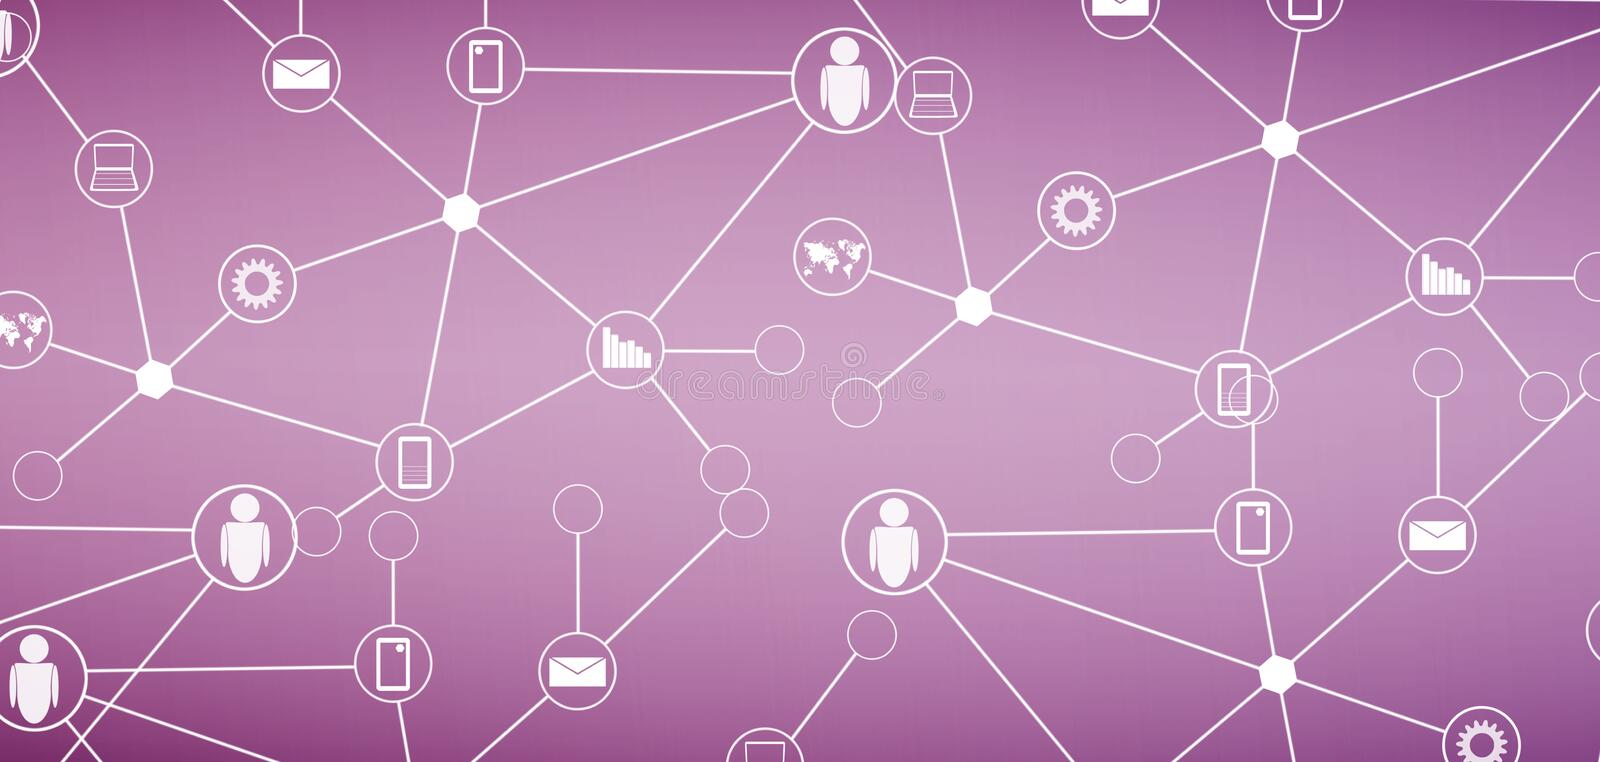 Social network. Abstract social network and technology background royalty free stock images